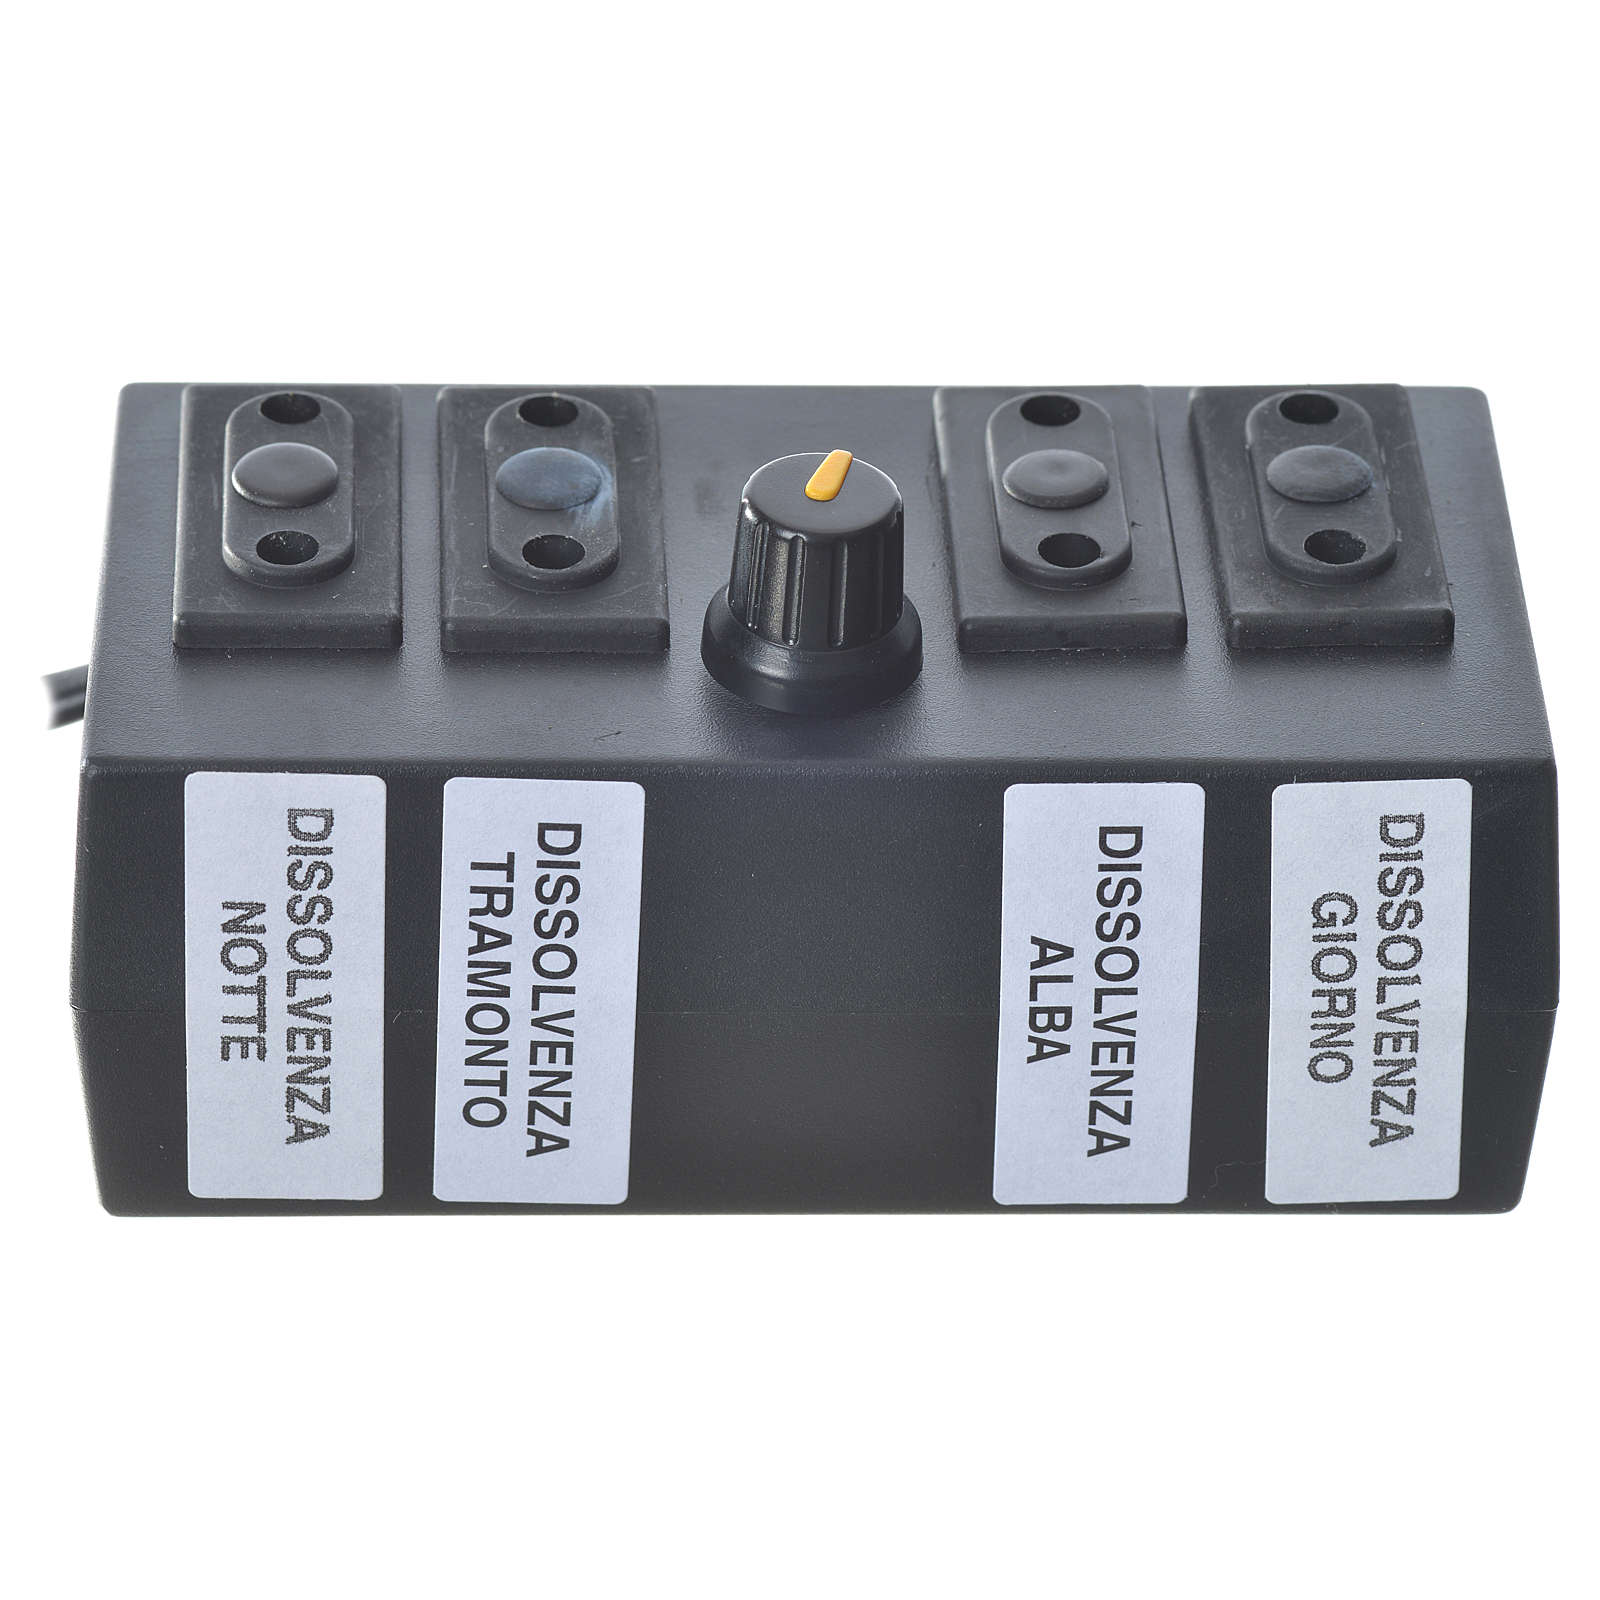 Electric central 600W 4 phases 4